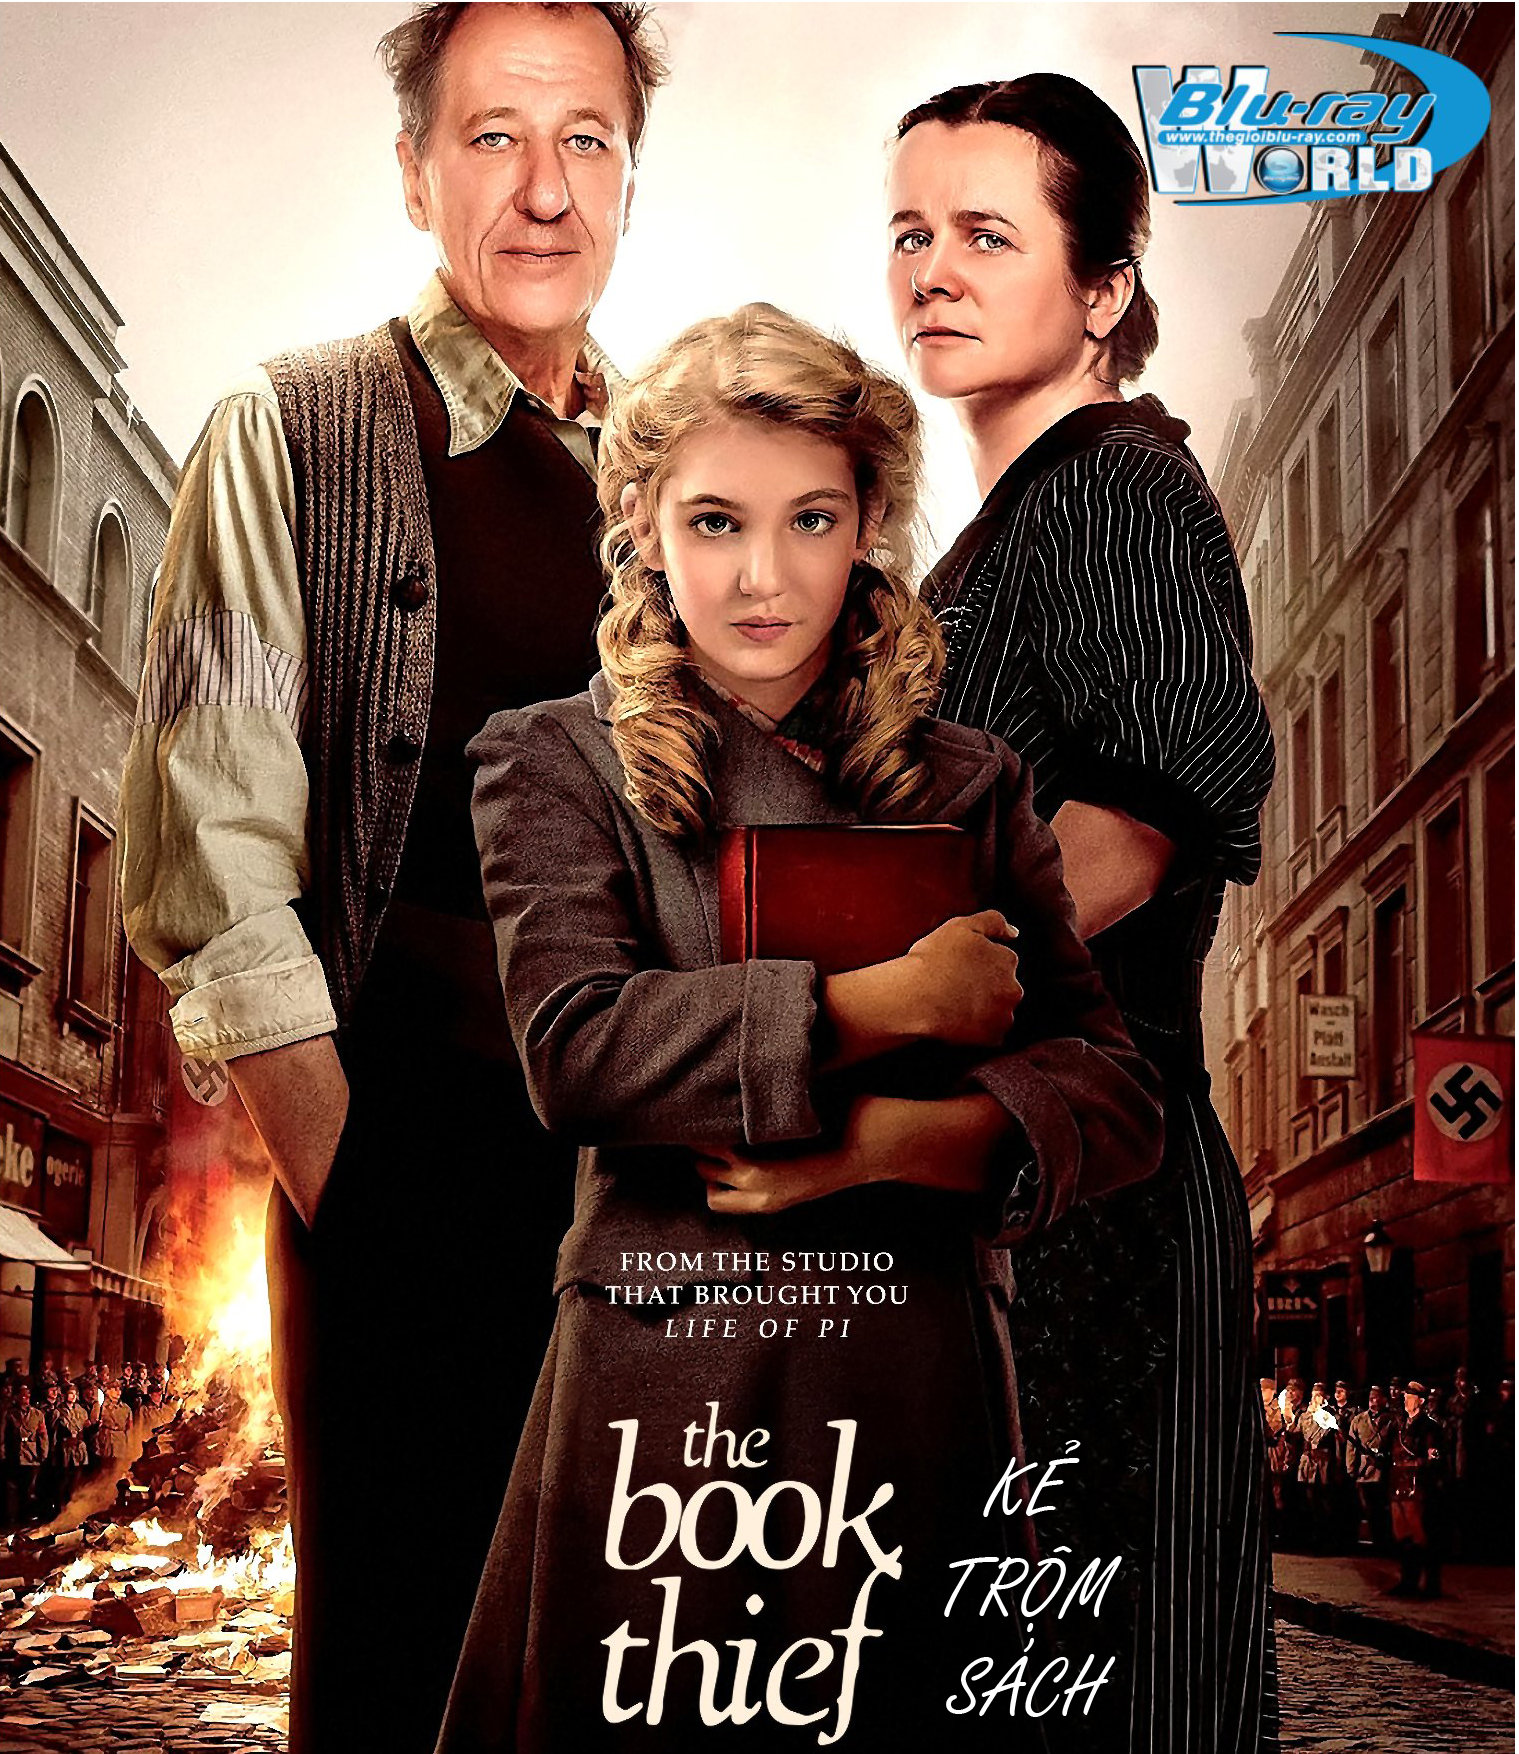 B1644. The Book Thief 2014 - KẺ TRỘM SÁCH 2D 25G (DTS-HD MA 5.1)